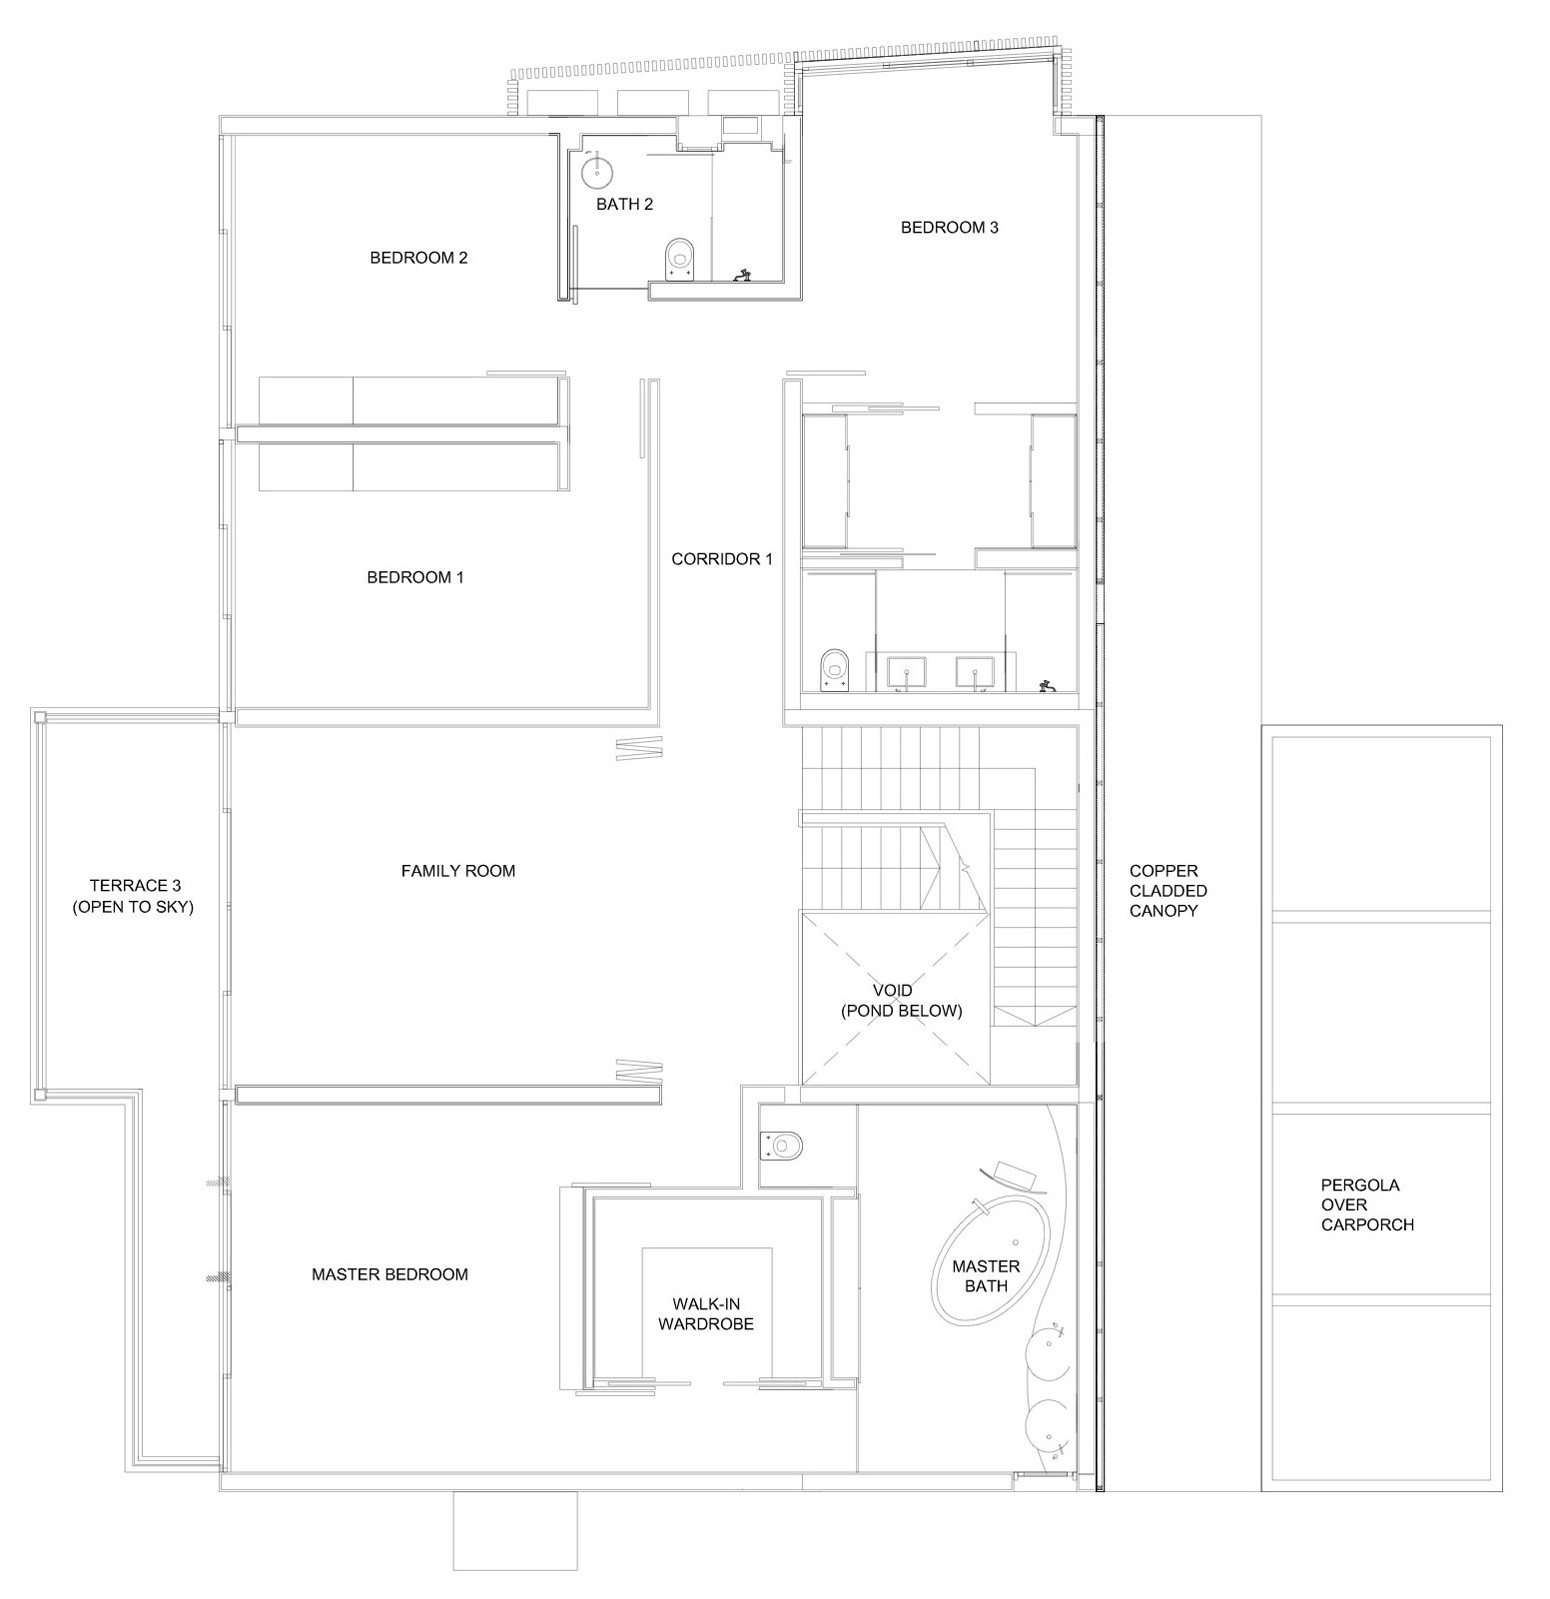 First Floor Plan, Minimalist Contemporary Home in Singapore